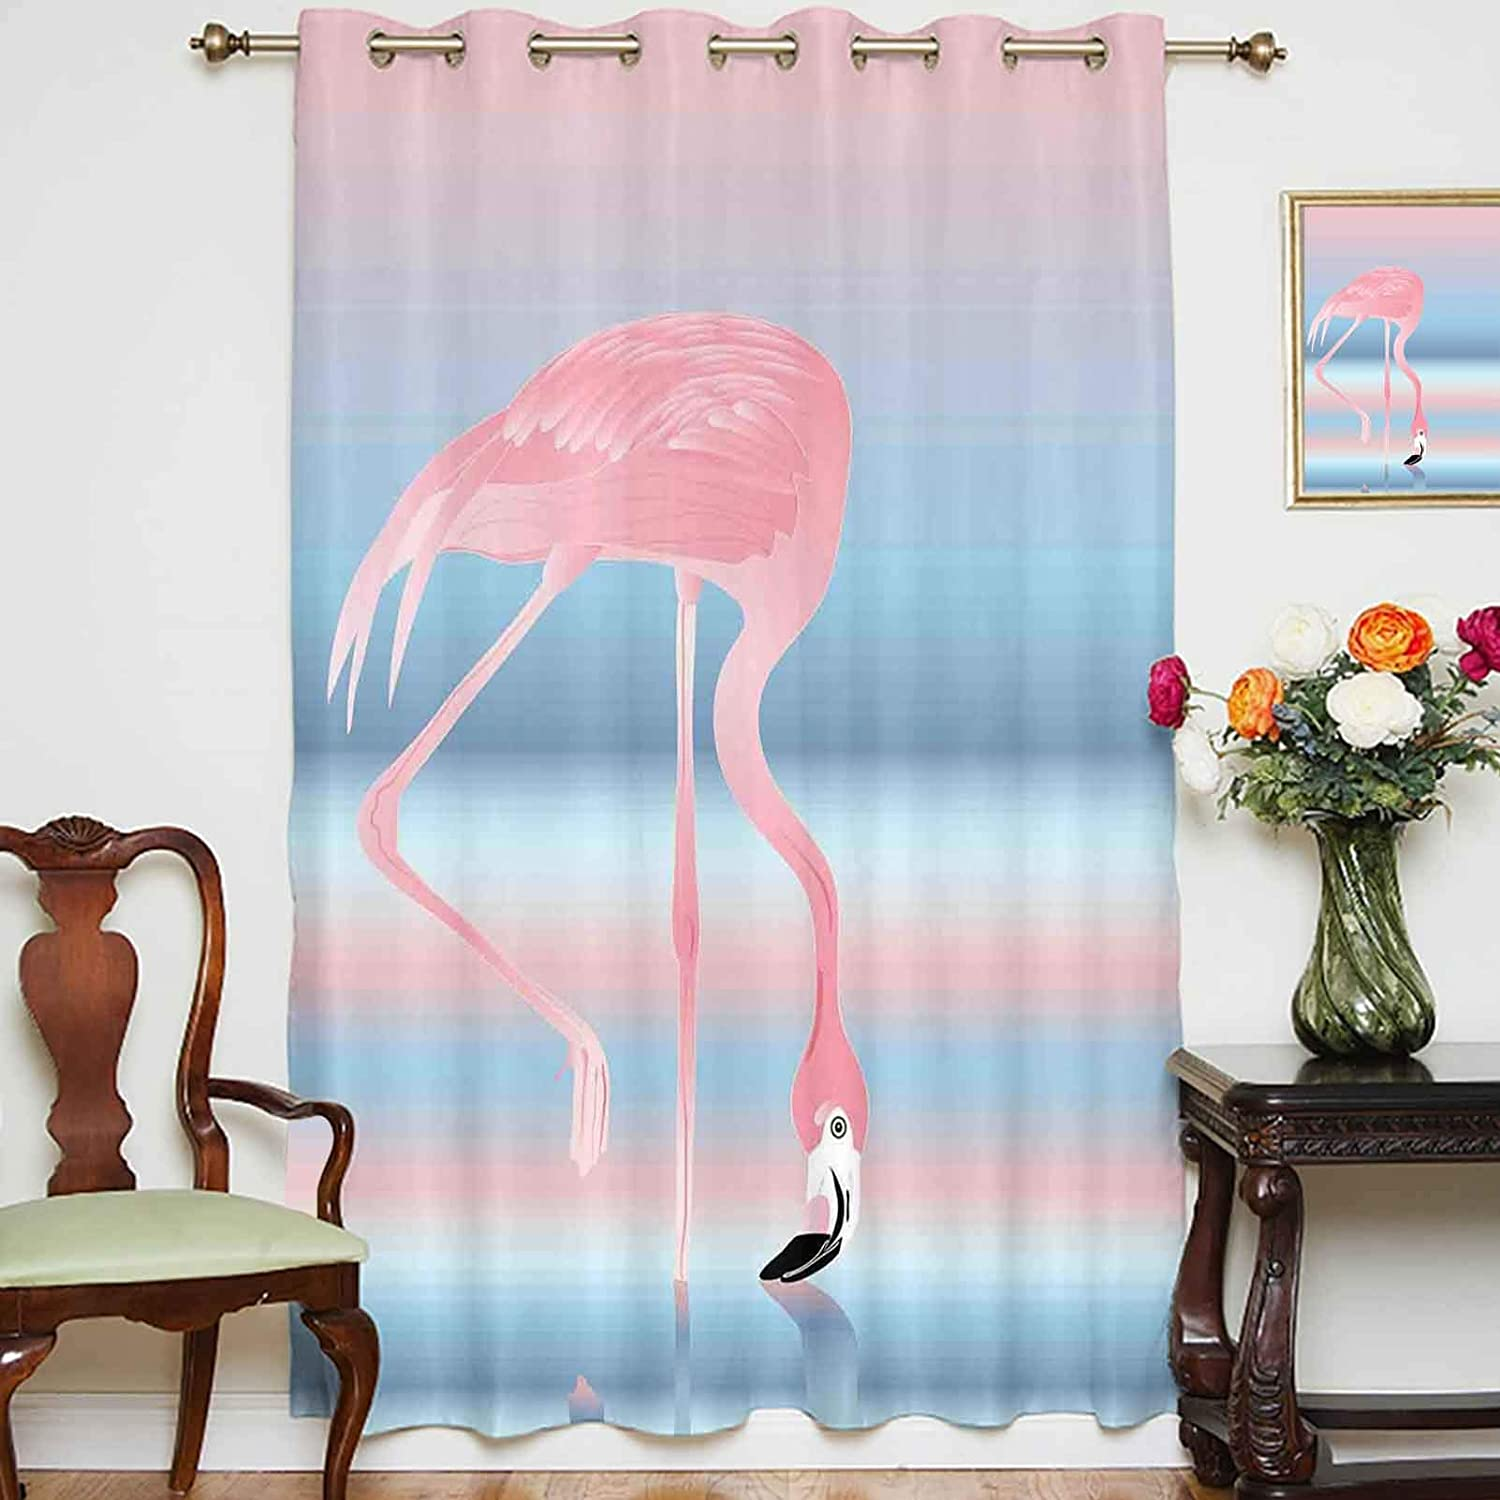 Blackout Curtains Panels Illustration of in famous Jacksonville Mall L Flamingo The Royal